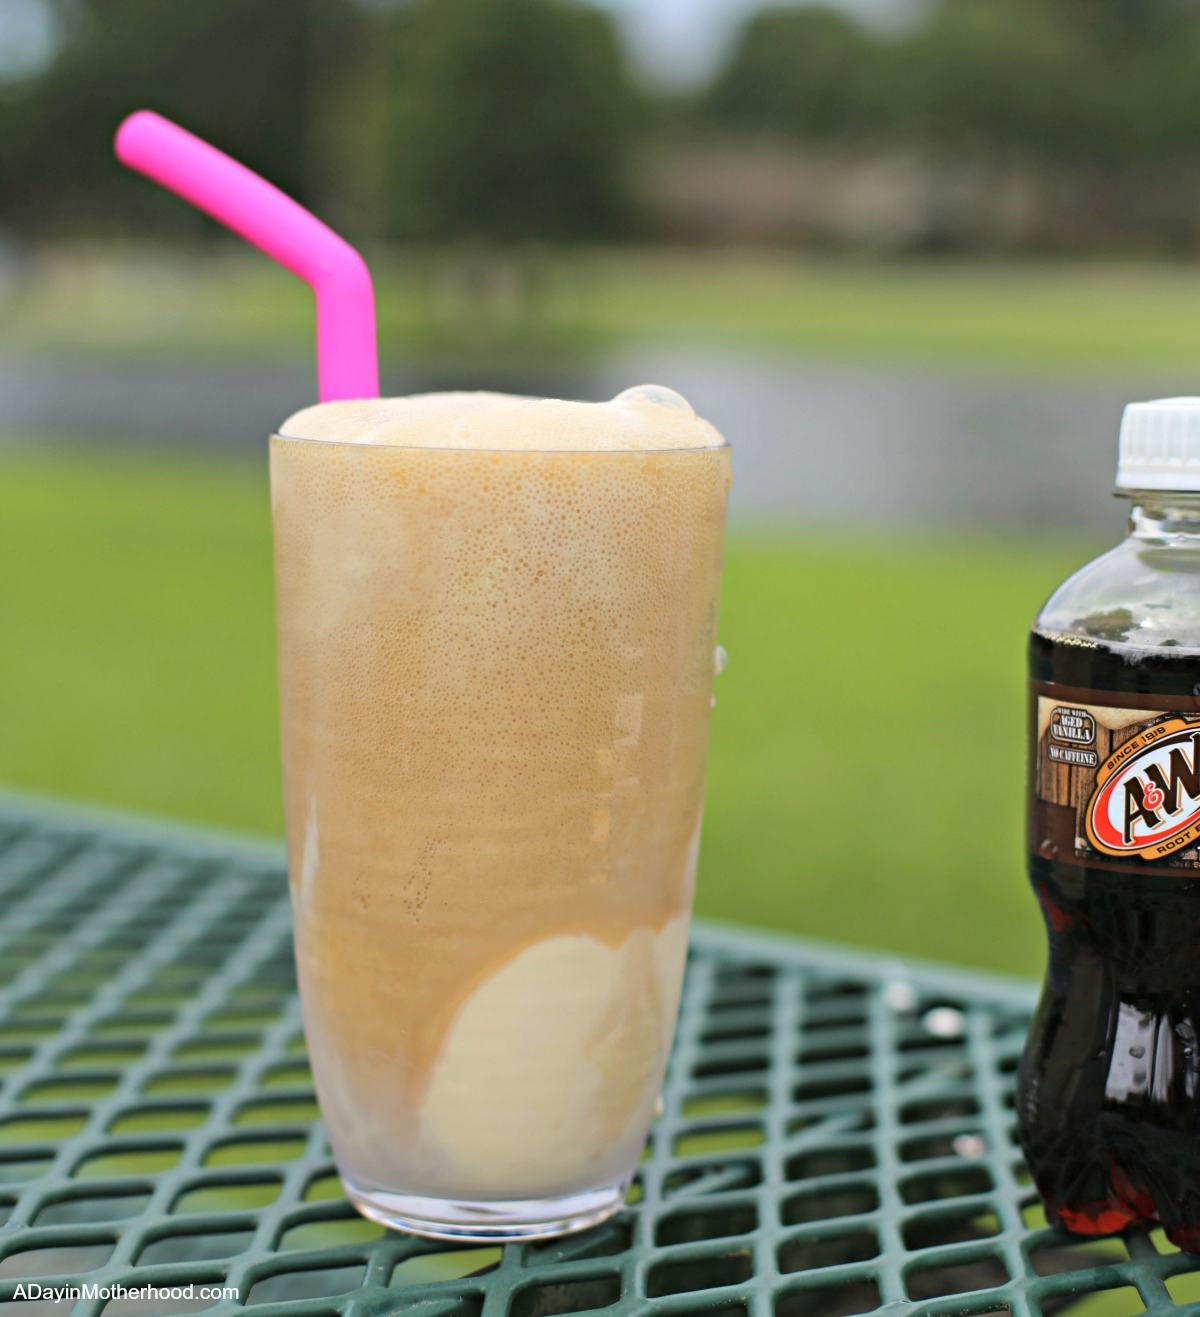 Summer Memories: Bringing the Past and My Grandmother Back to Life with a yummy float